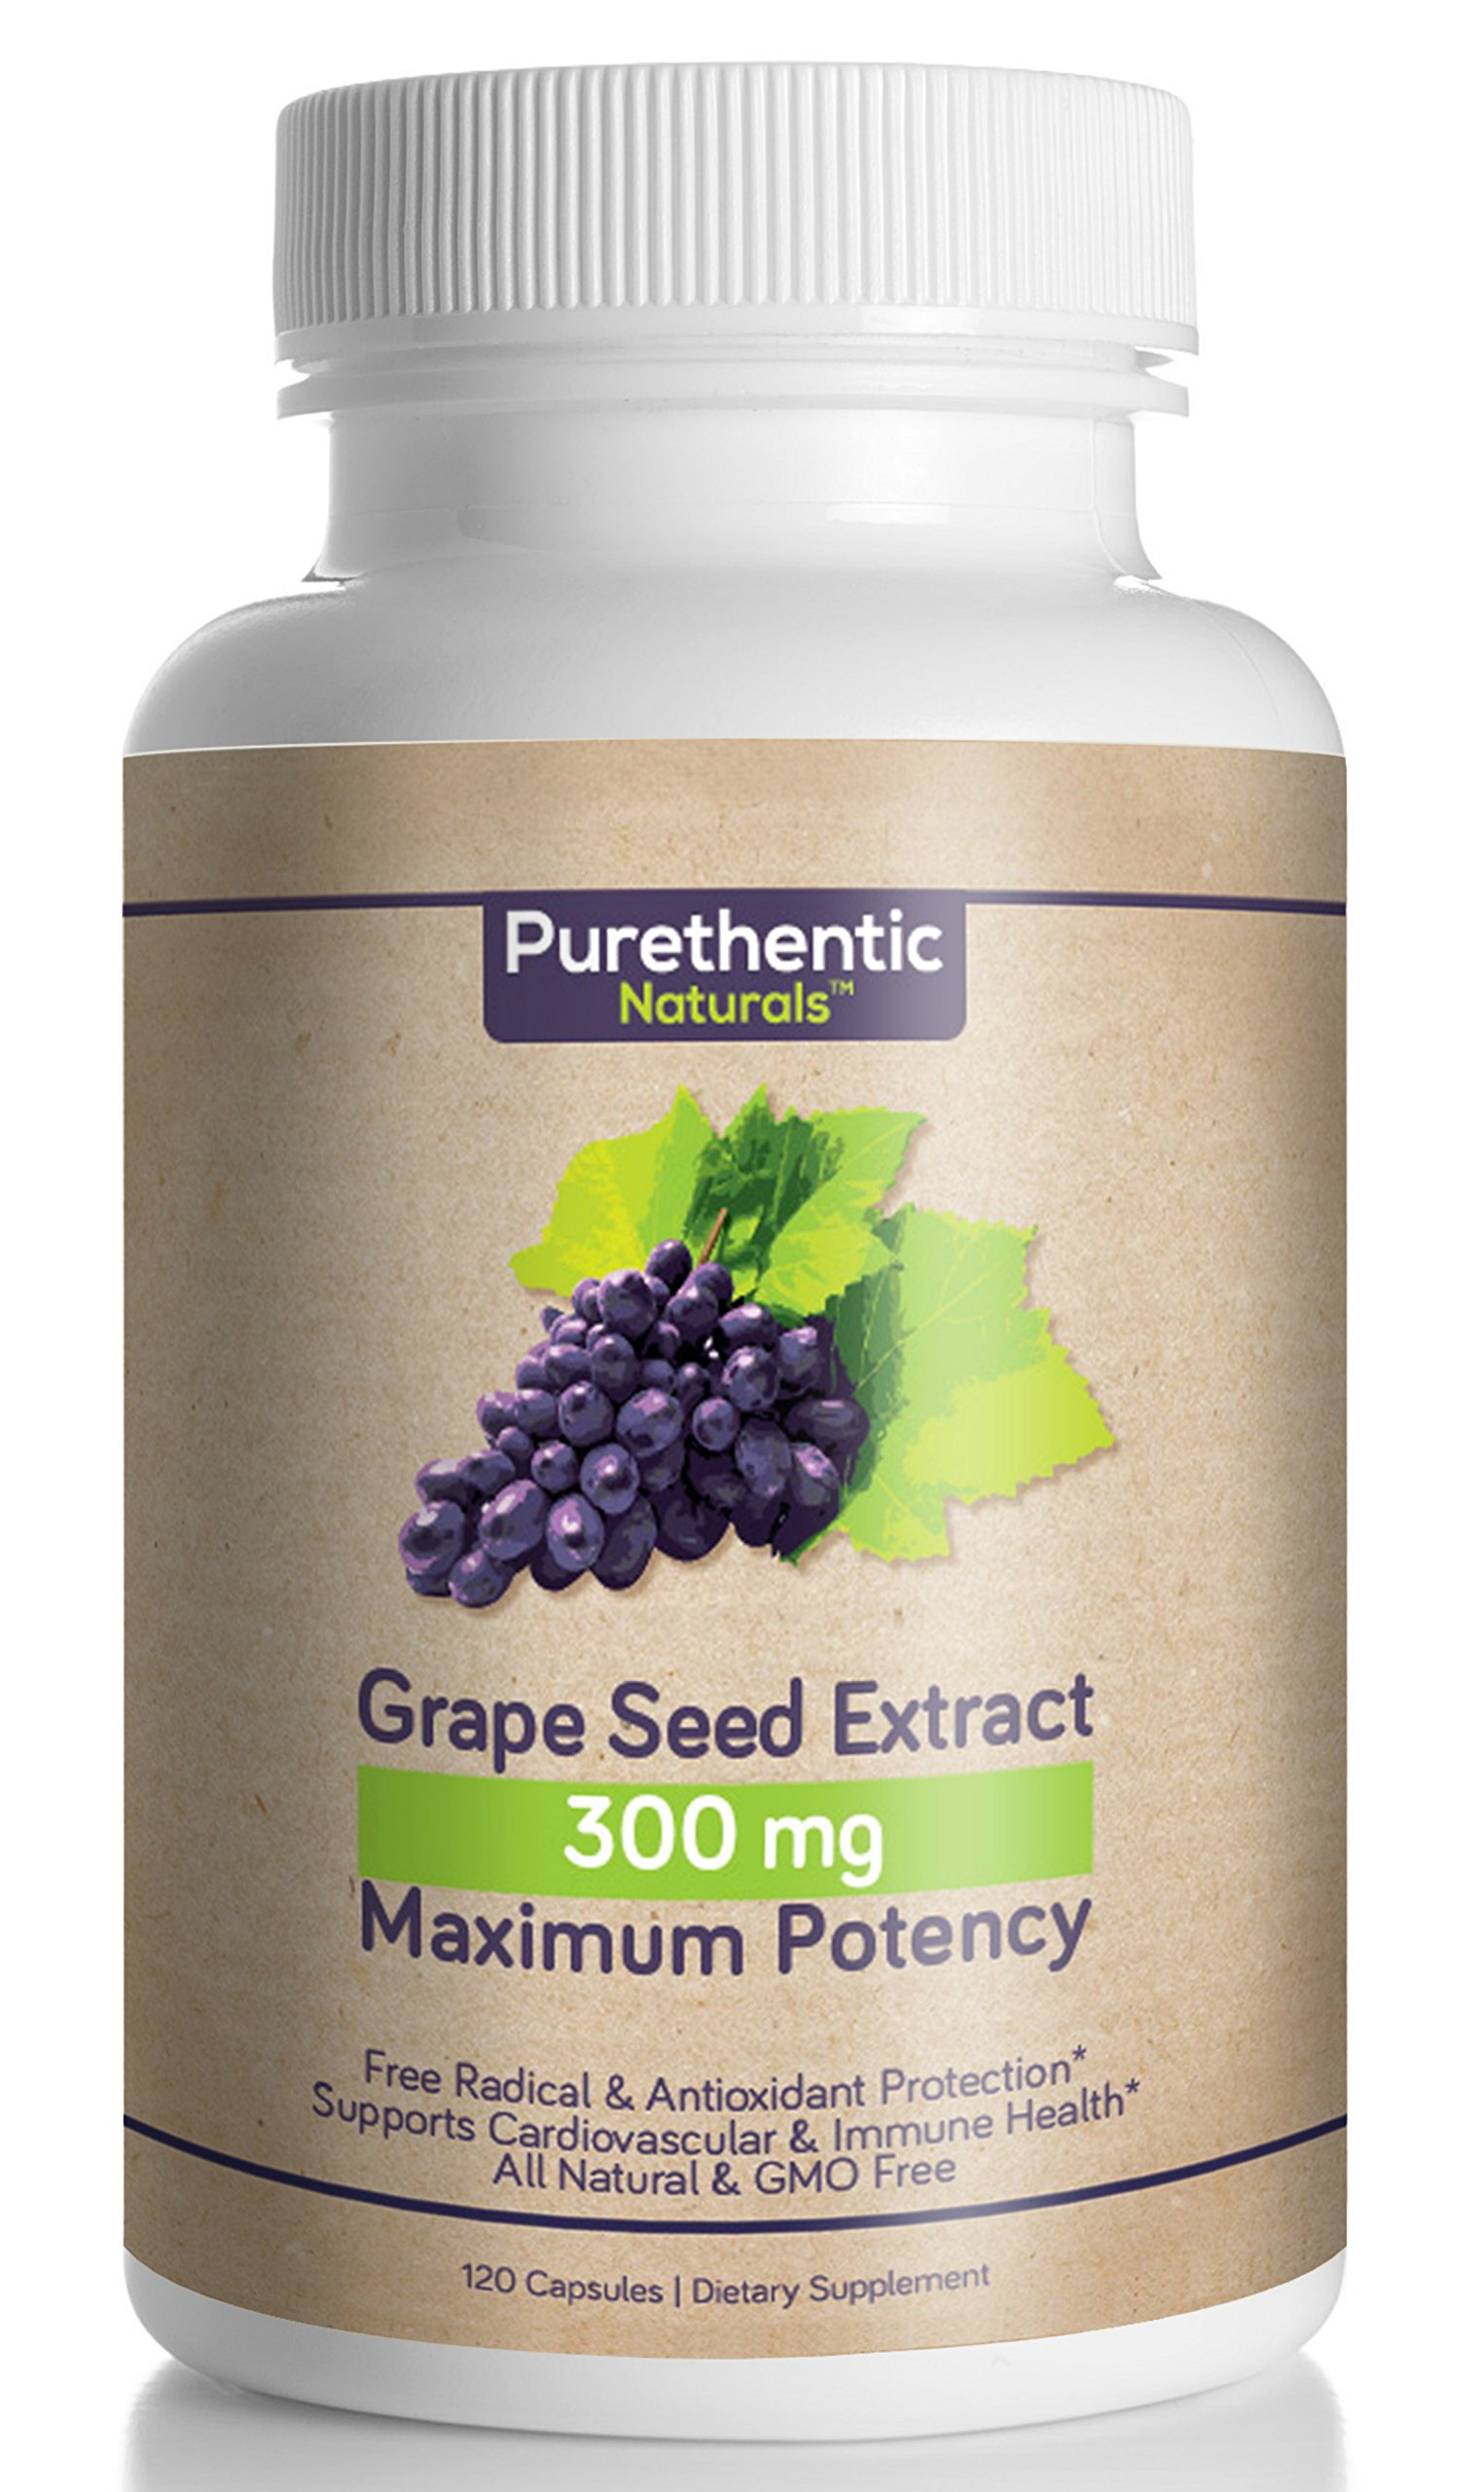 Grape Seed Extract Capsules 300mg, 120 Count, 4 Month Supply, Natural - High Potency - (95% Proanthocyanidins) Purethentic Naturals, (1 Bottle) by Purethentic Naturals